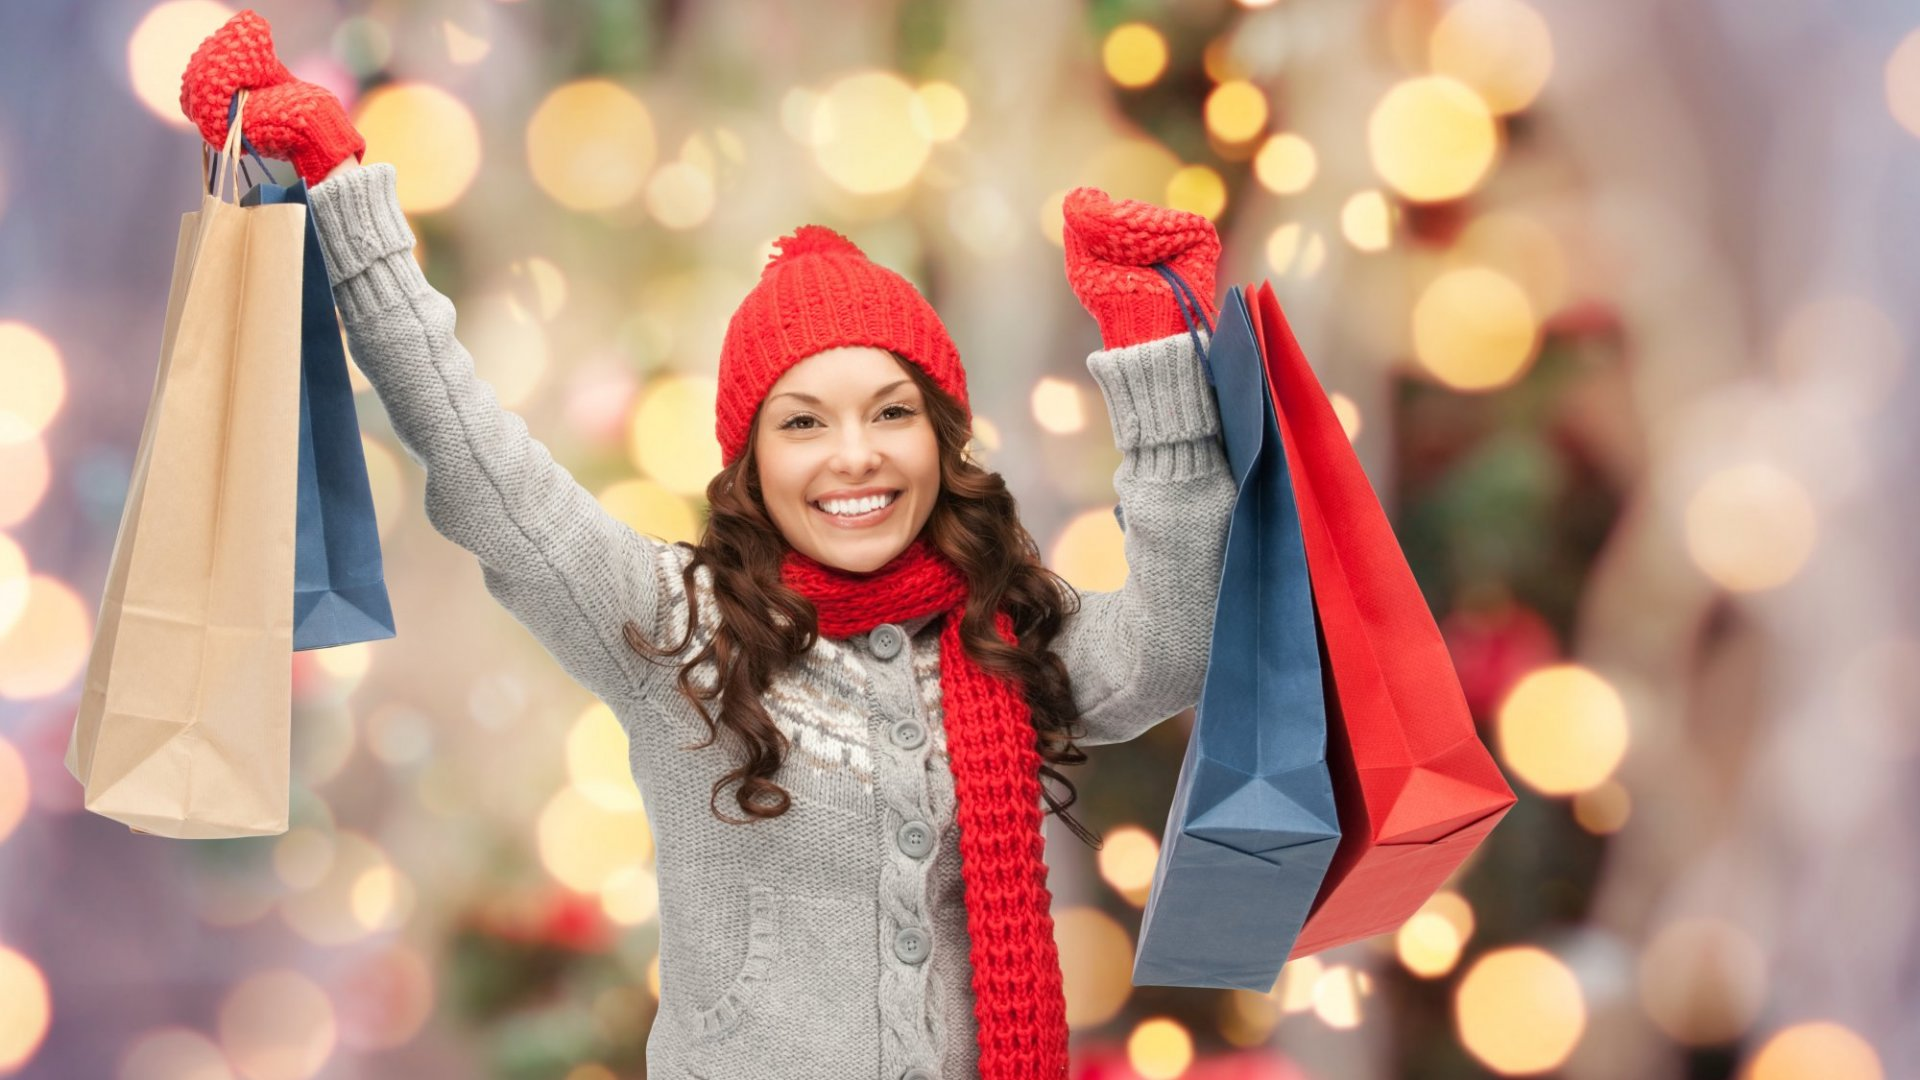 5 Marketing Pitfalls to Avoid During the Holidays